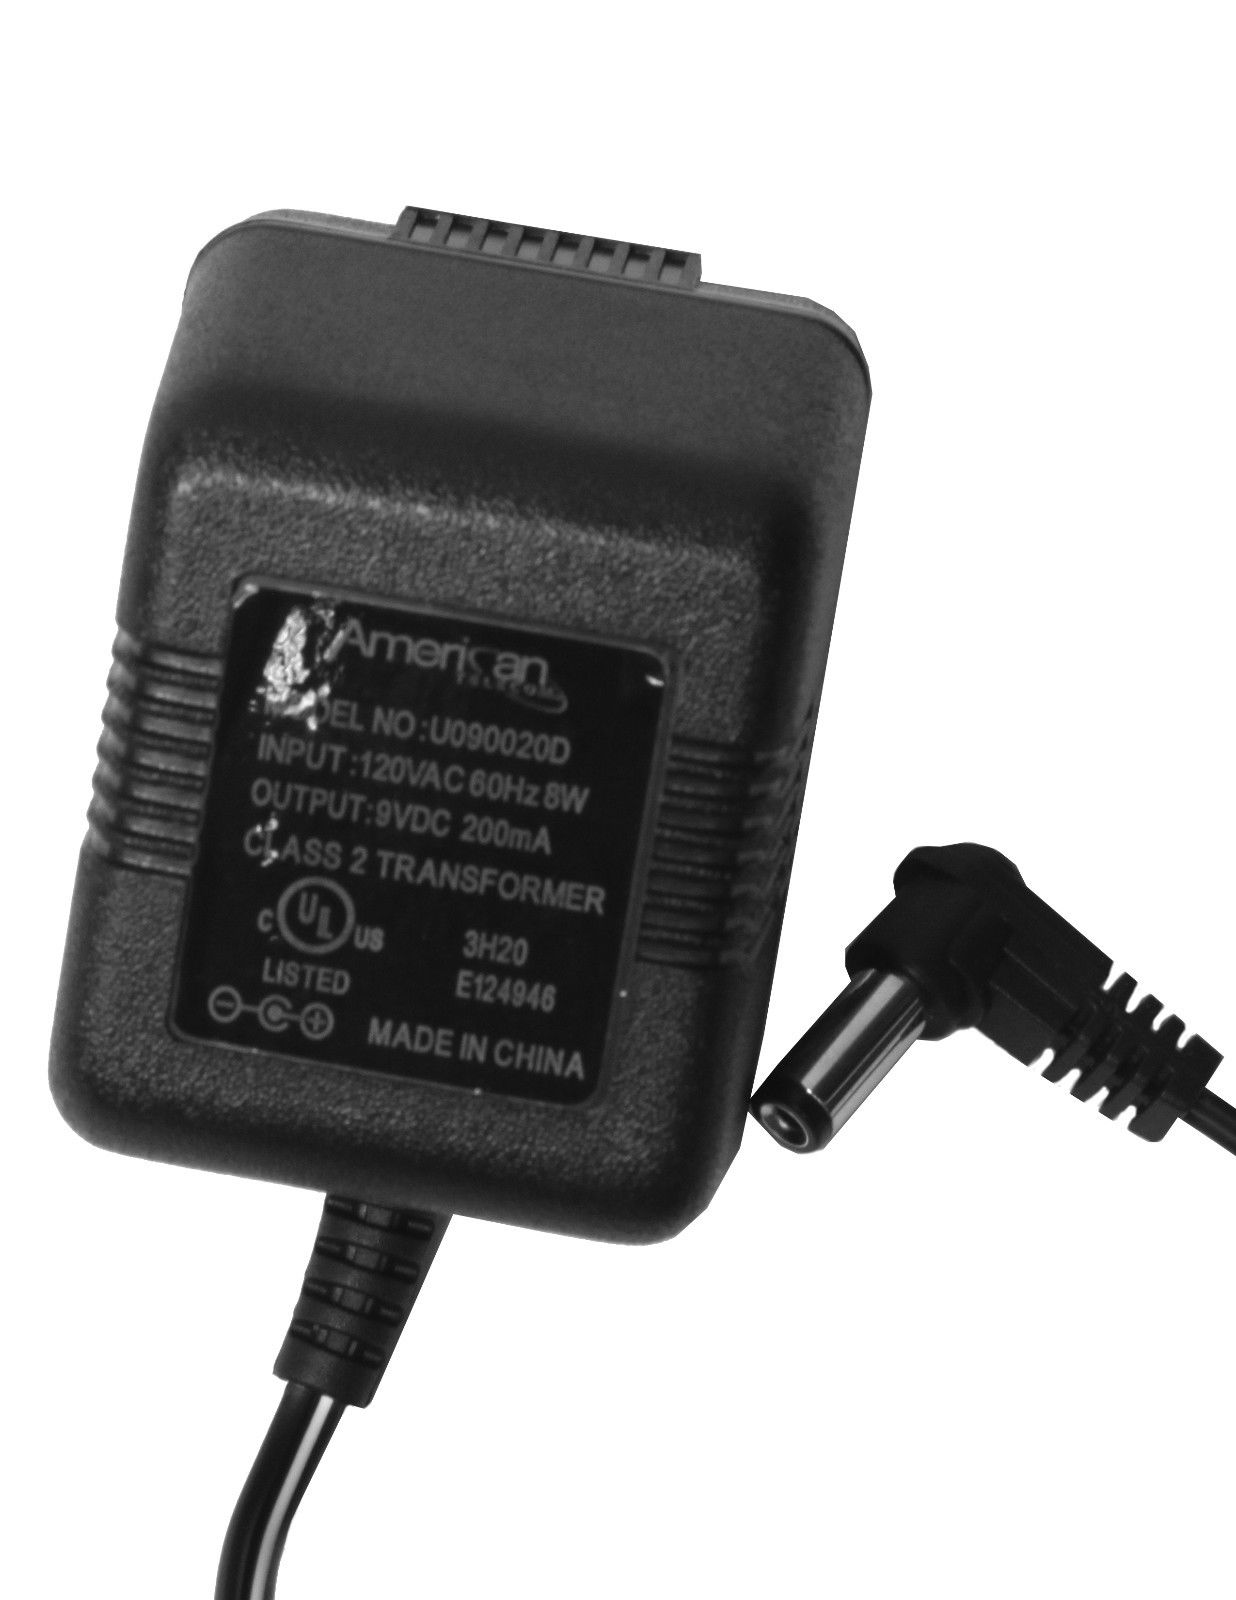 American U0900200 9 Volt Wall DC Power Adapter Charger 9VDC 200mA AC adapter